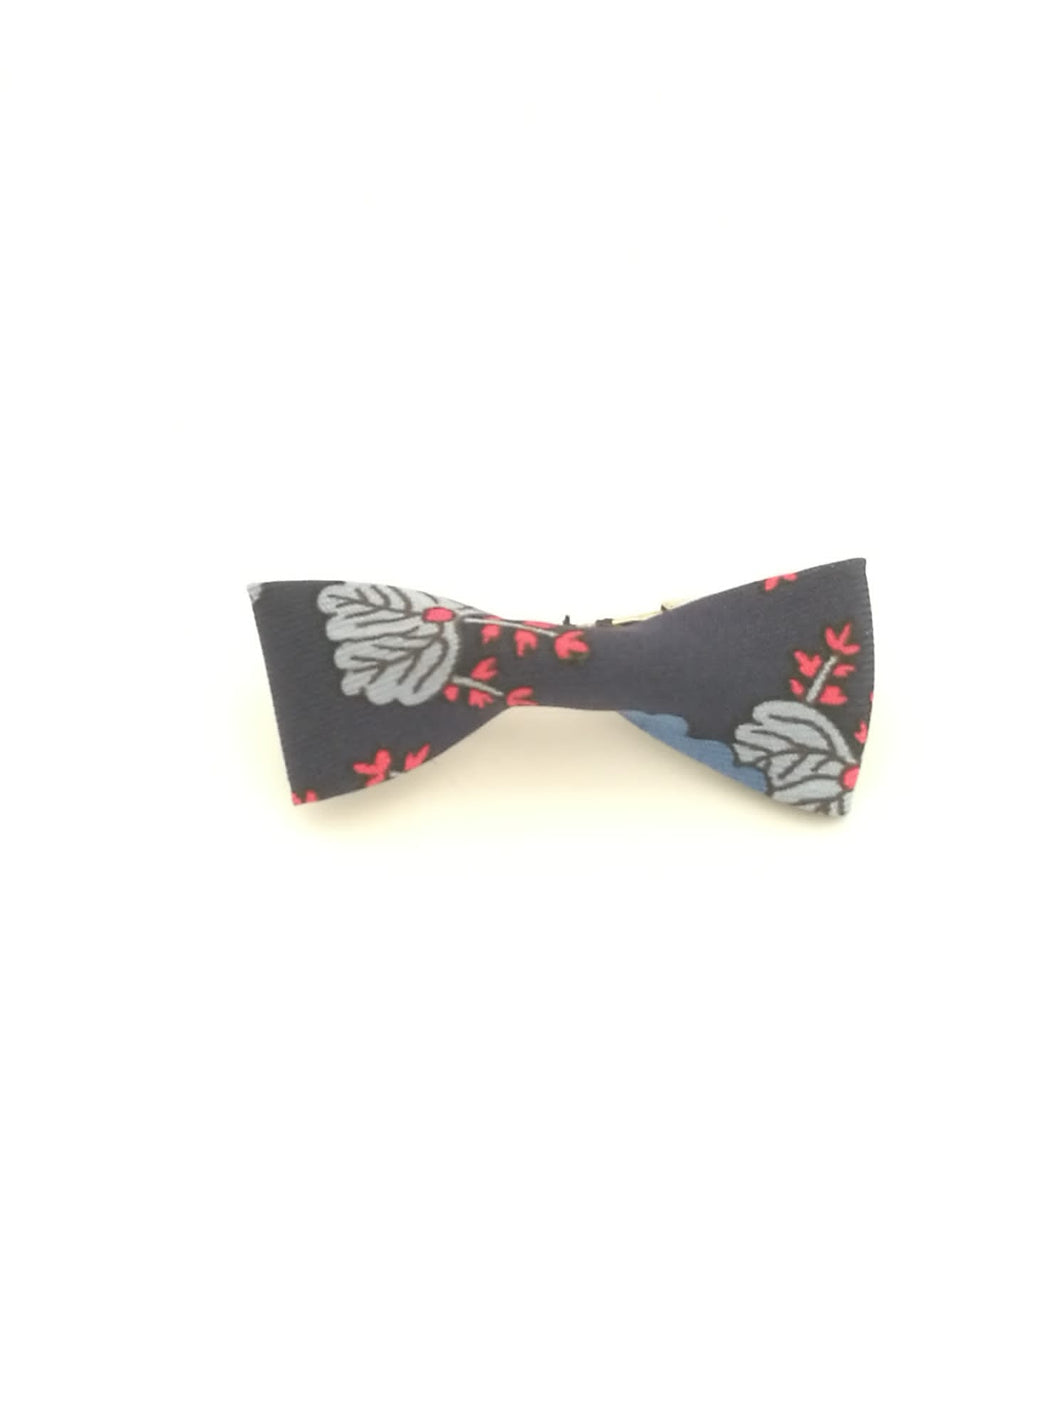 papillon handmade with vintage Hermes silk tie.